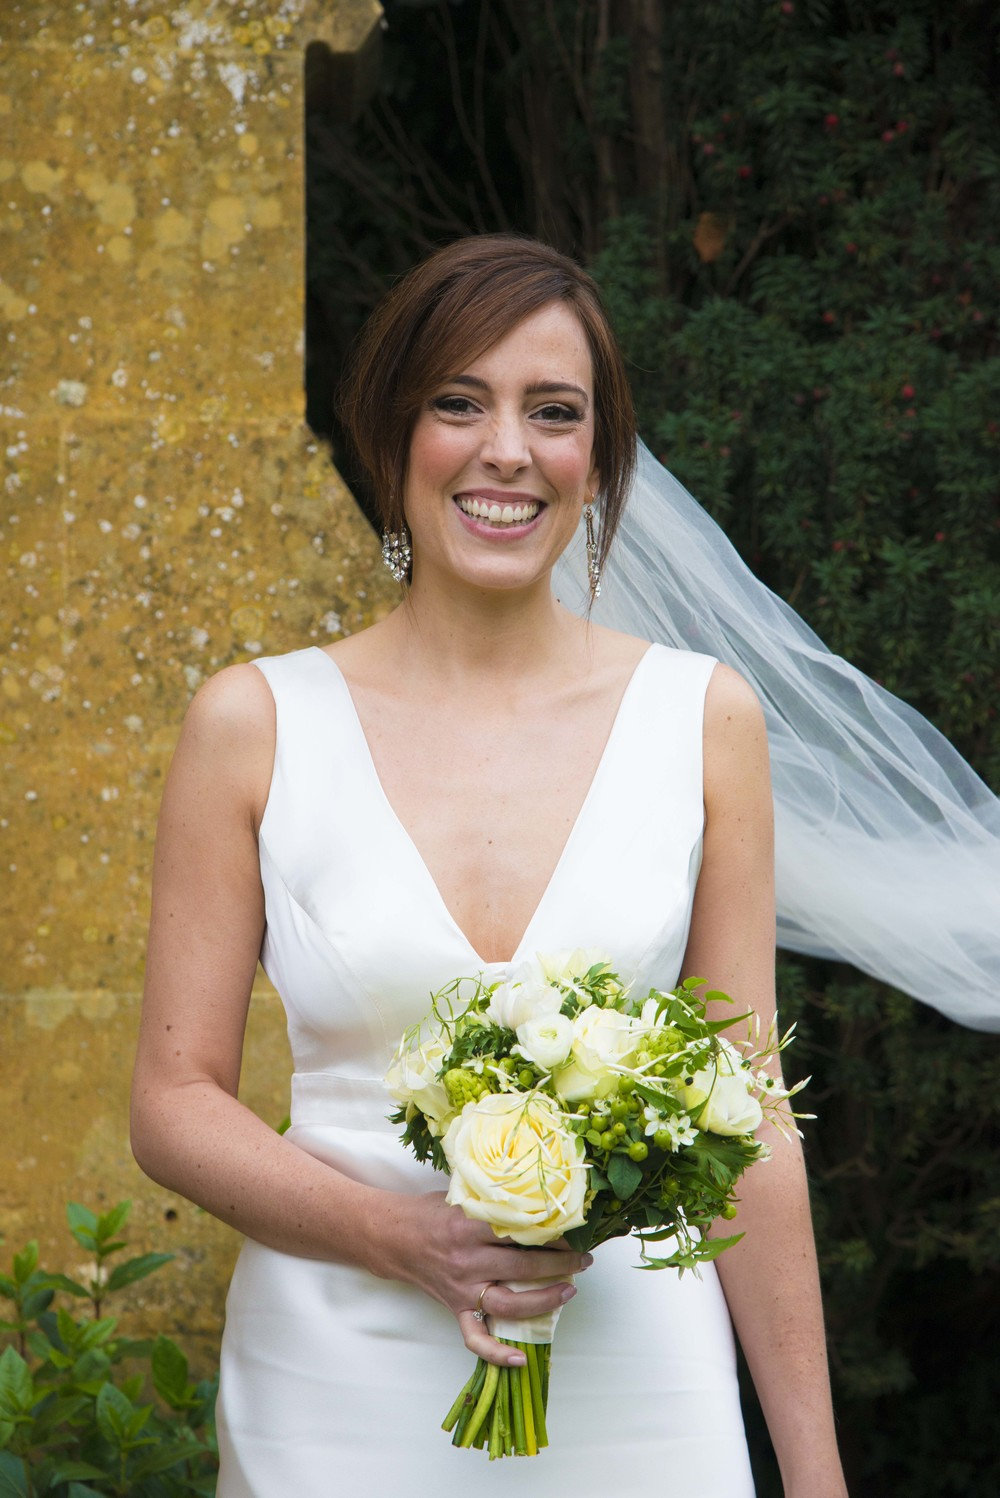 Bride - Romilly (Dec 2013)